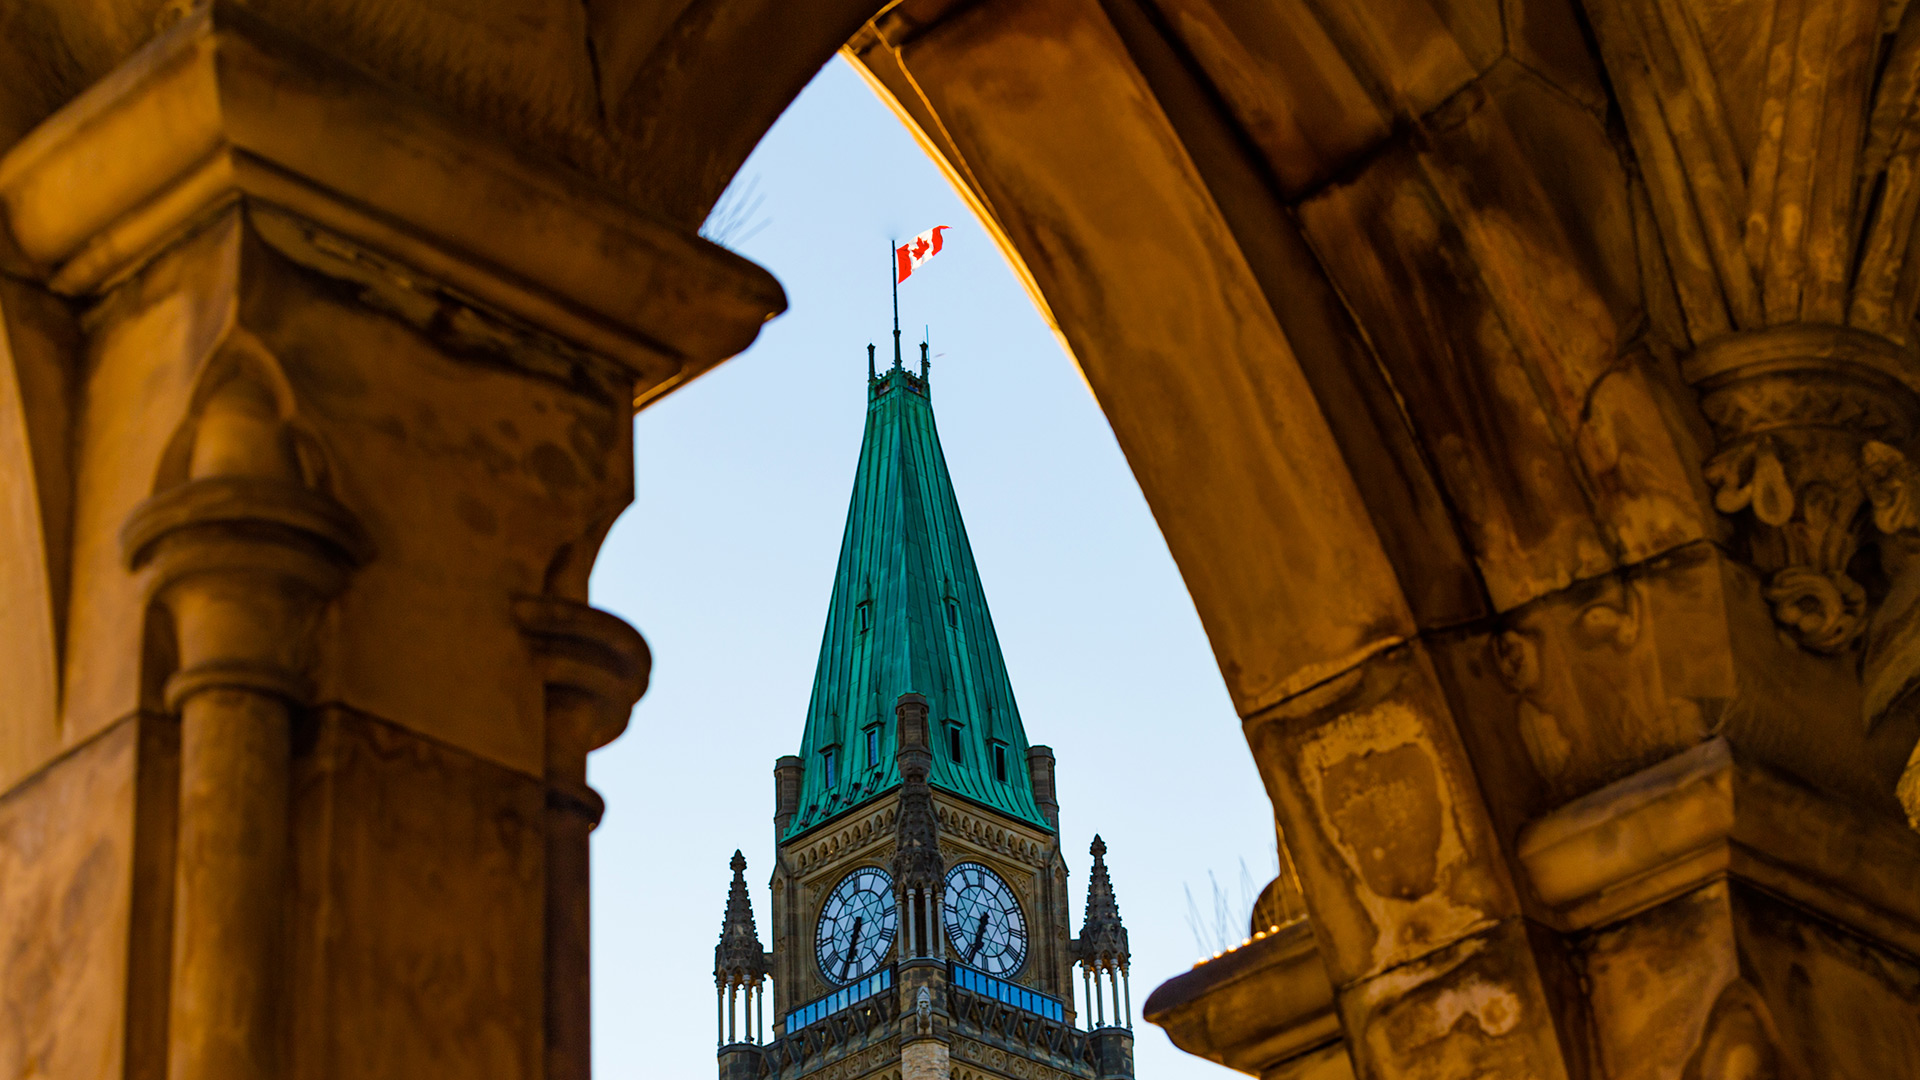 Canadian flag on top of Parliament building peeking through arch of other building